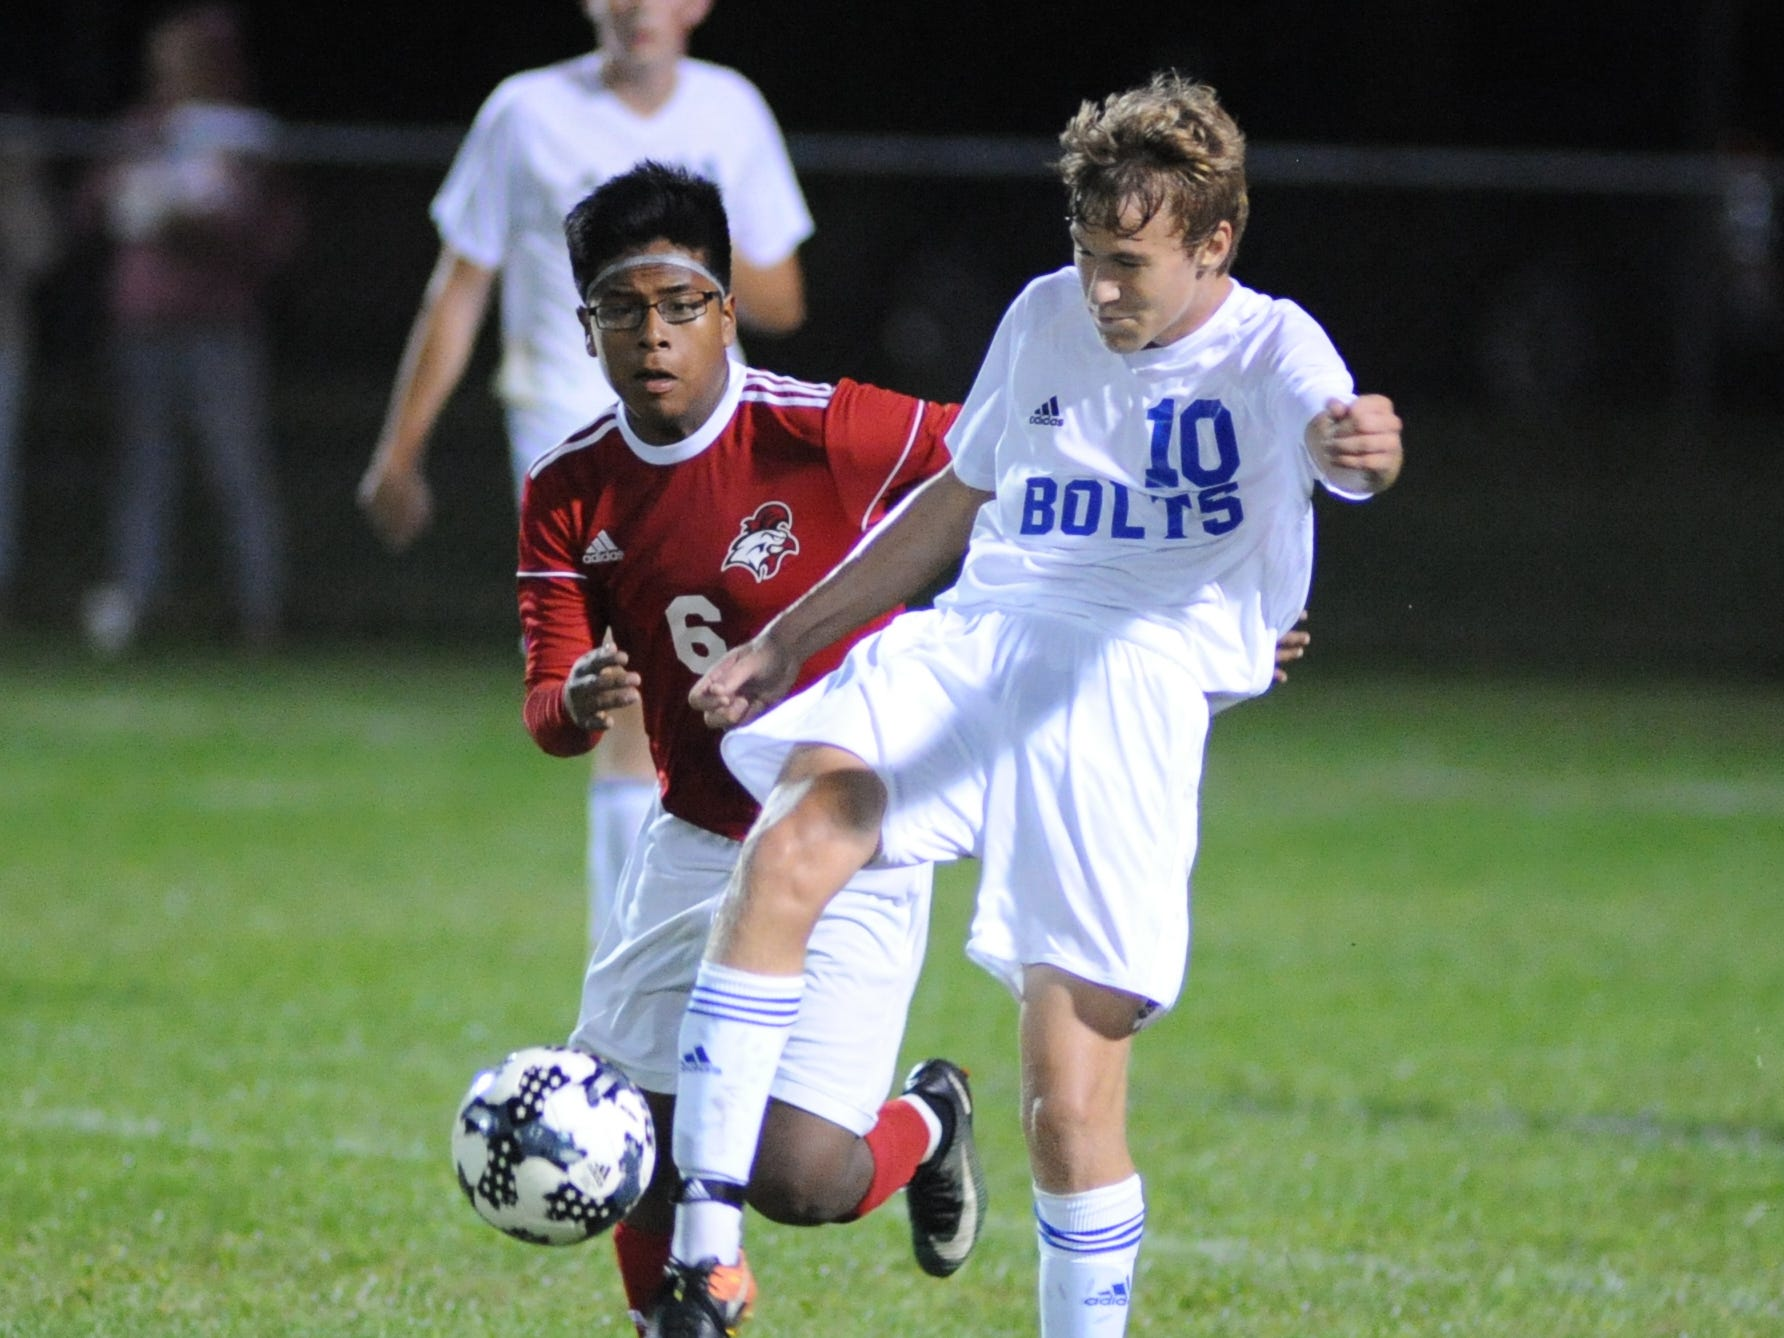 Millville's Josh Dion moves the ball with Vineland's Jonathan David defending during a boys soccer game at Romano Sports Complex in Vineland, Monday, Sept. 17, 2018.